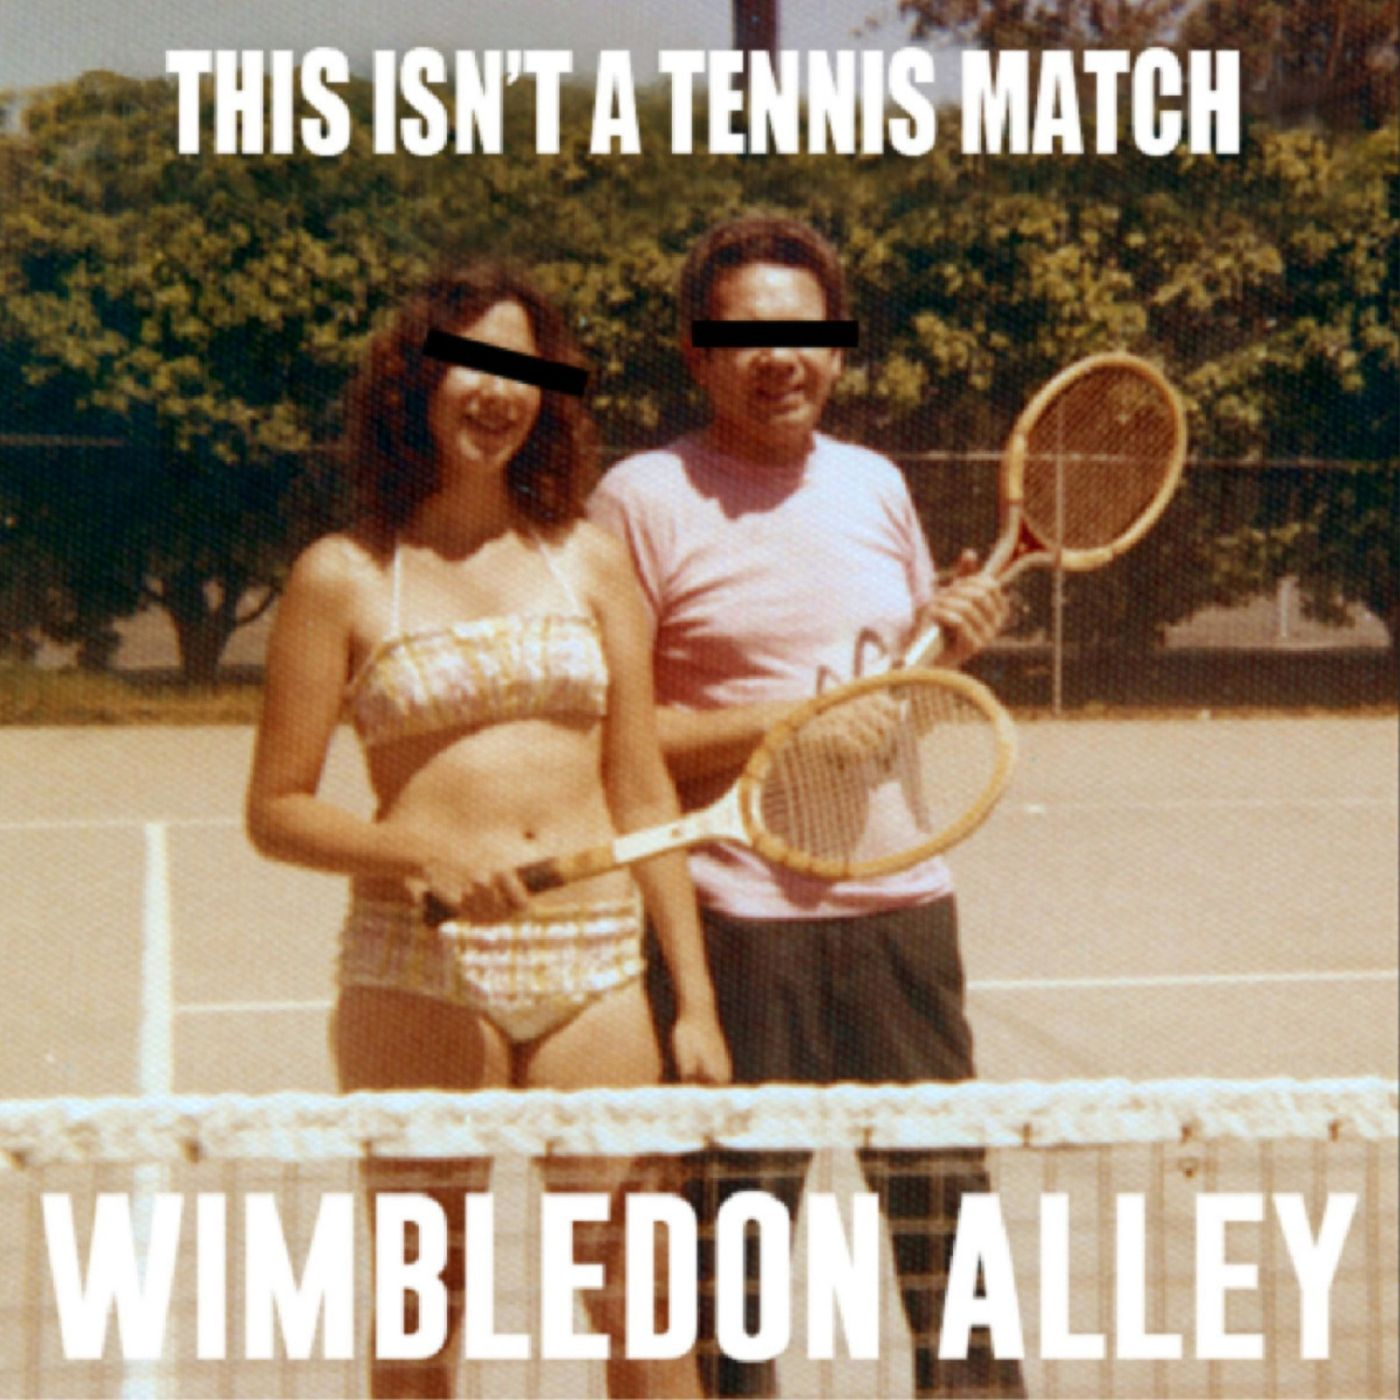 Wimbledon Alley - This Isn't a Tennis Match (Rematch) (2019)